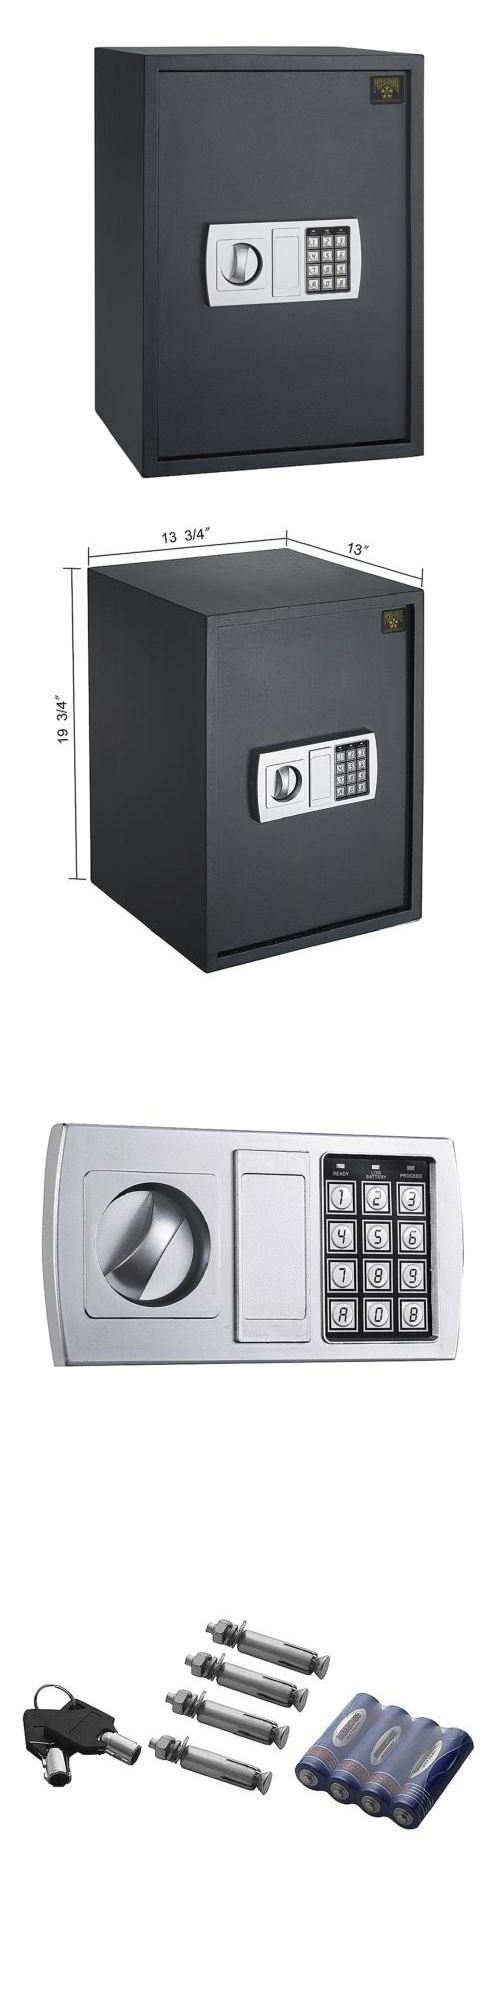 Safes 121836: Large Fire Safe Electronic Lock Box Security Steel Fireproof Home Office Sentry -> BUY IT NOW ONLY: $89.6 on eBay!